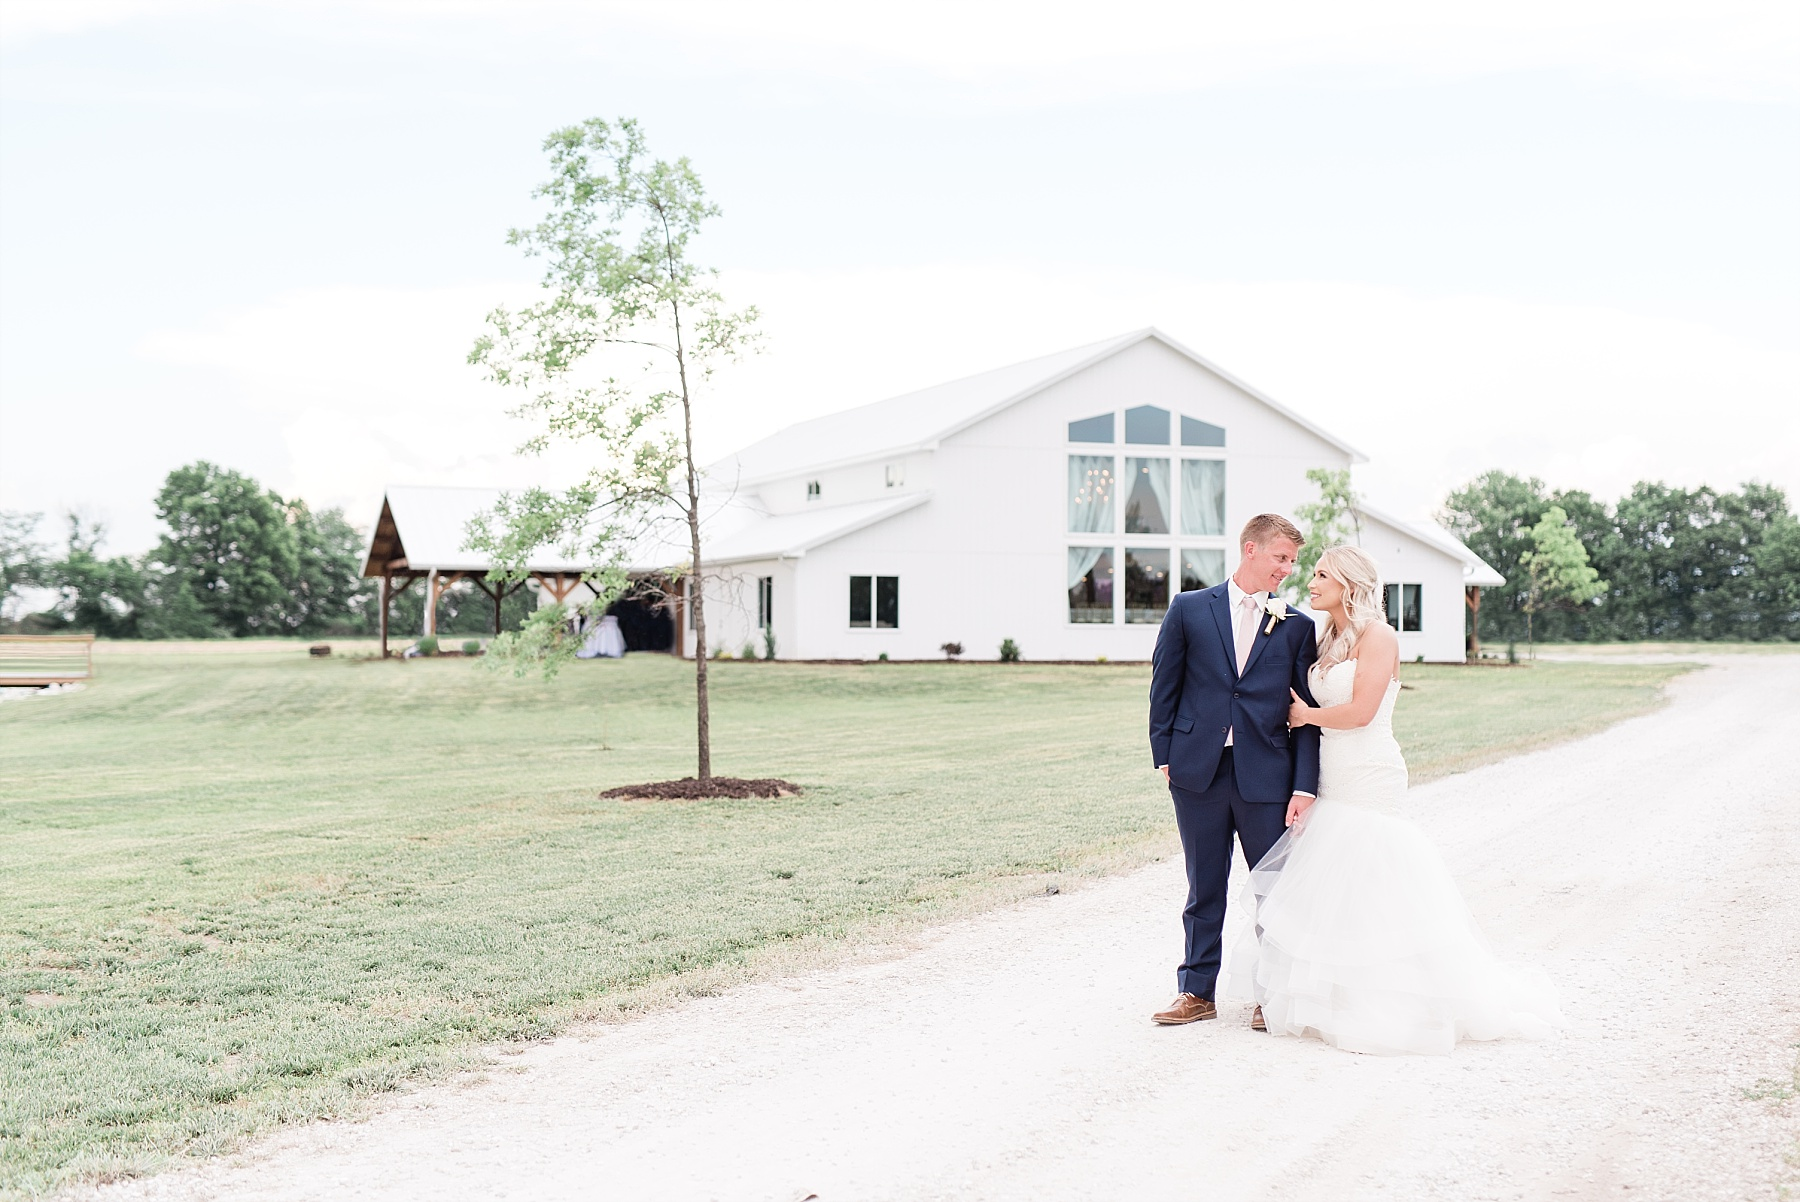 Cody and Mariah Dudenhoeffer Wedding at Emerson Fields Venue by Kelsi Kliethermes Photography_0076.jpg